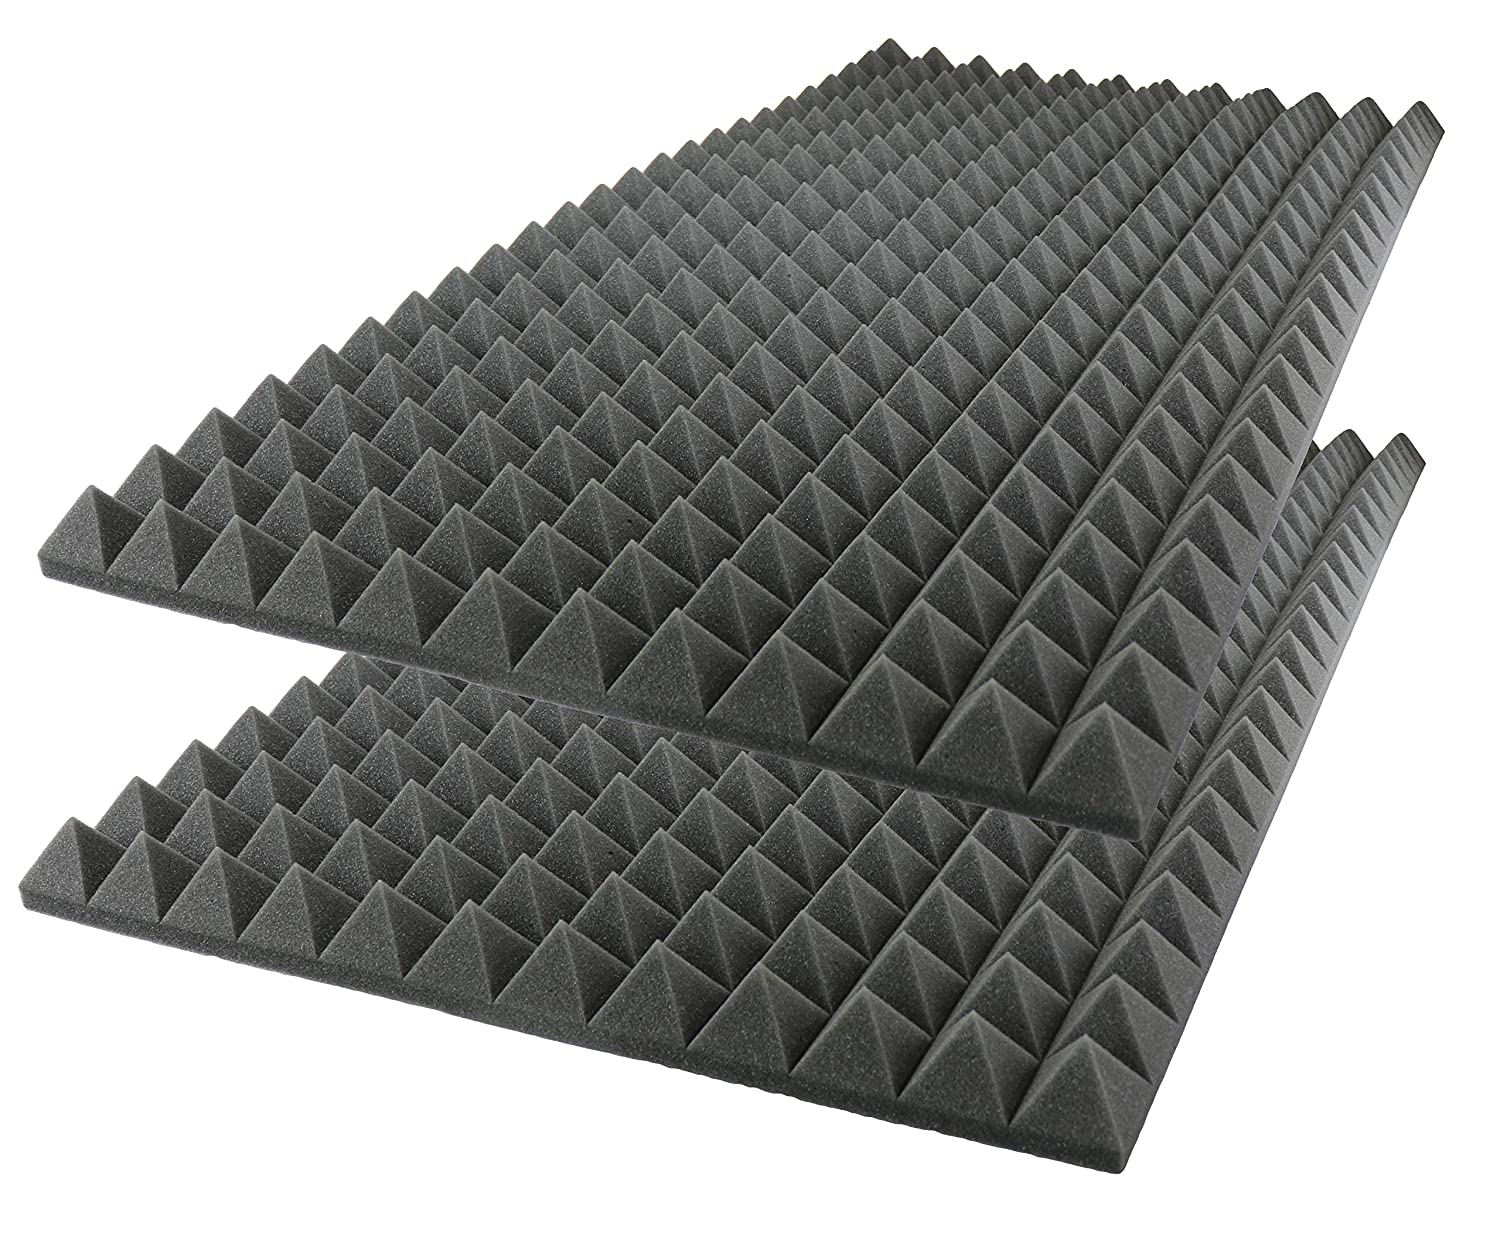 Acoustic Foam Sound Absorption Pyramid Studio Treatment Wall Panel, 48 X 24 X 2 Foamily PYRA-48x24x2